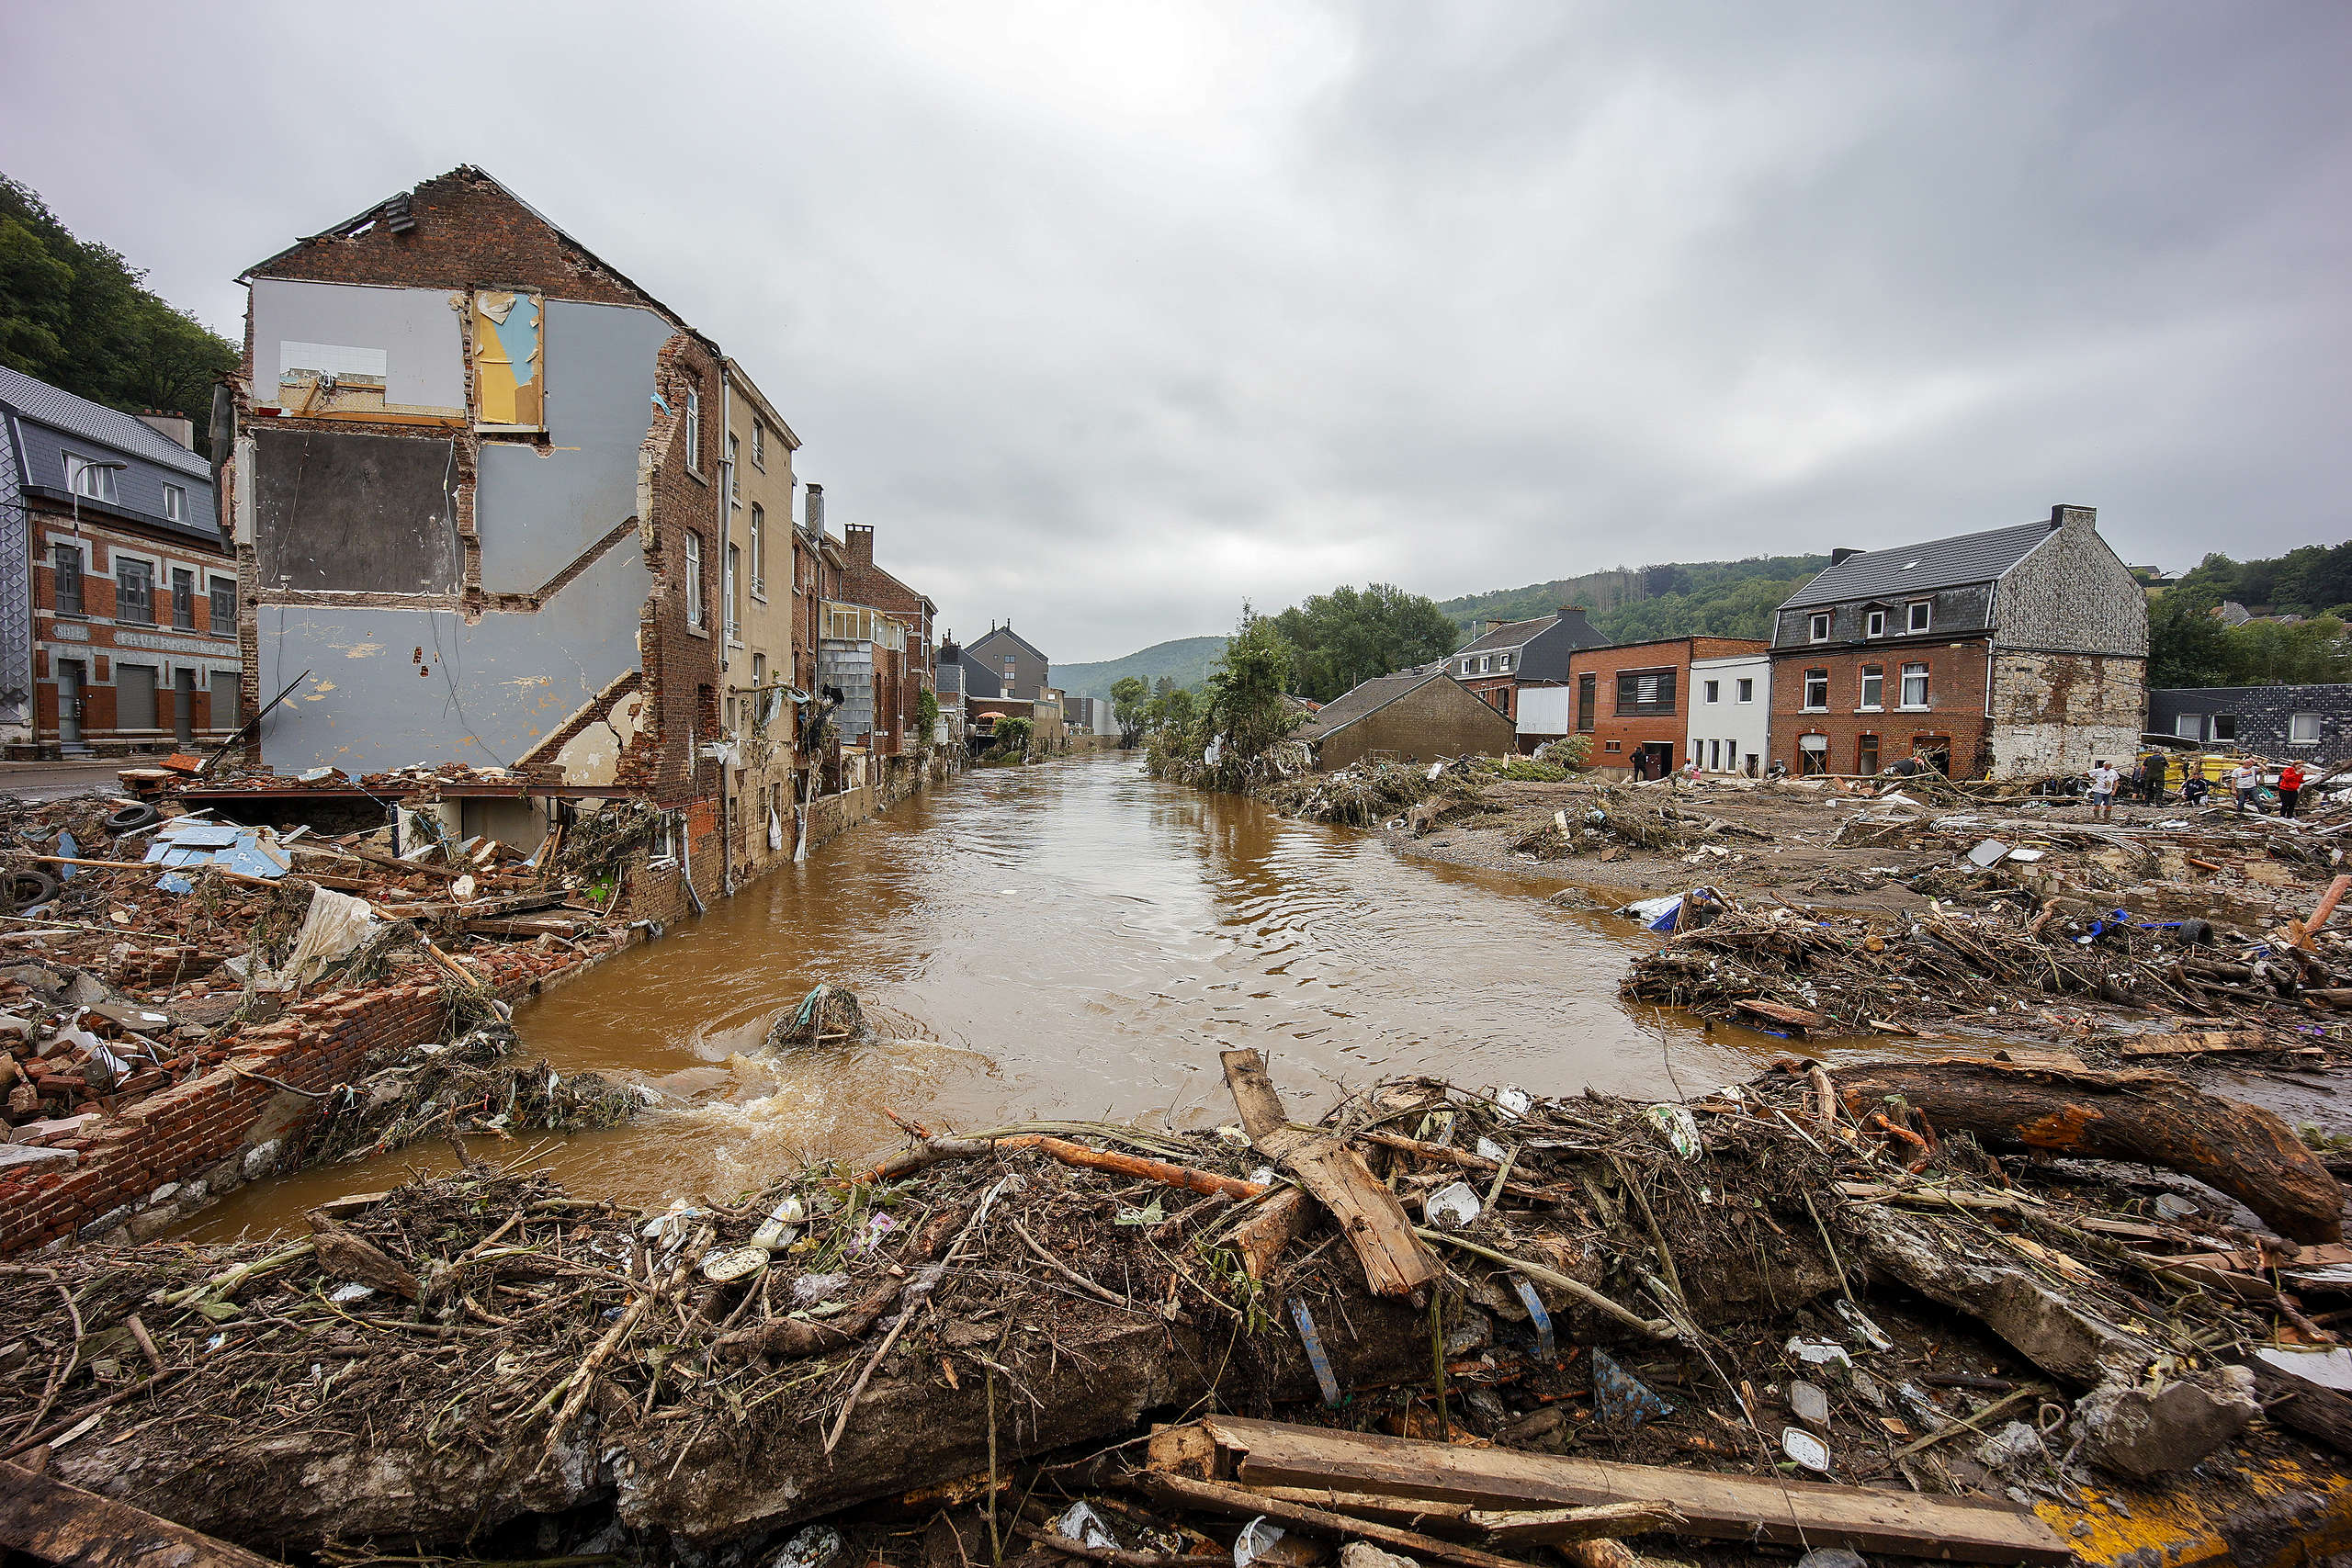 View of the destruction following severe flooding after heavy rainfall in Pepinster, Belgium. © Olivier Matthys/Getty Images